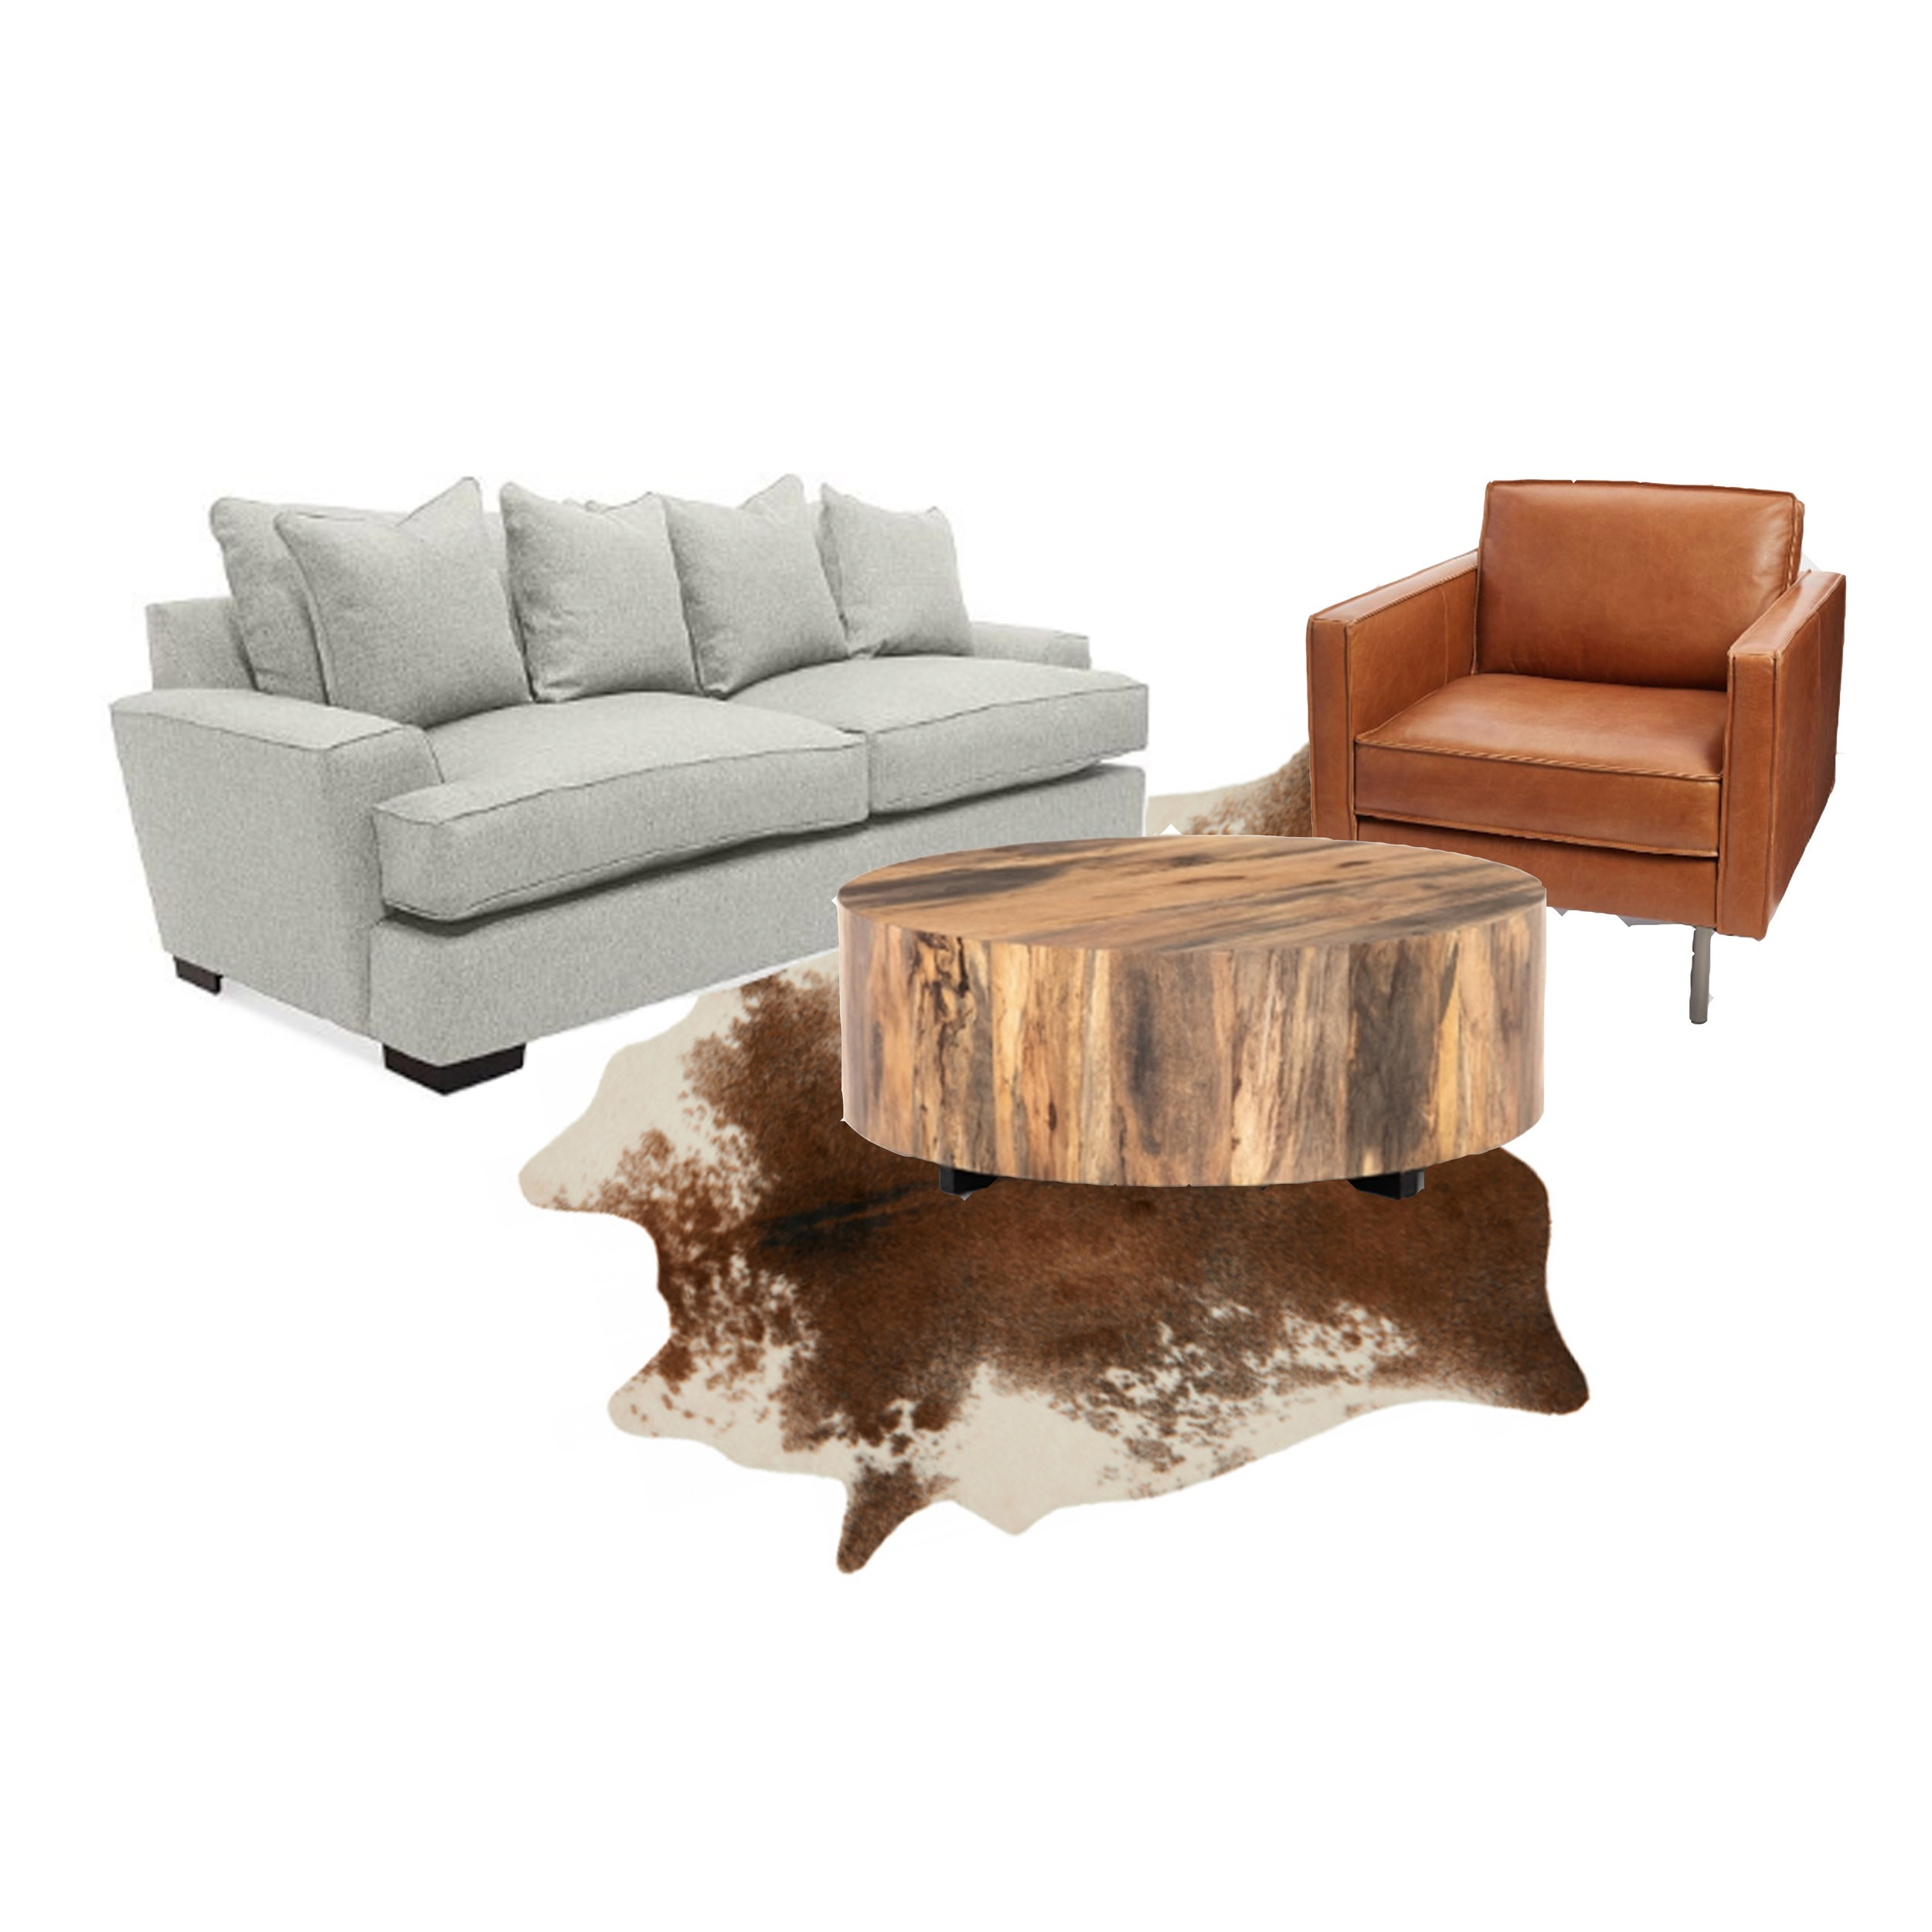 Couch, chair, coffee table, and fur rug.